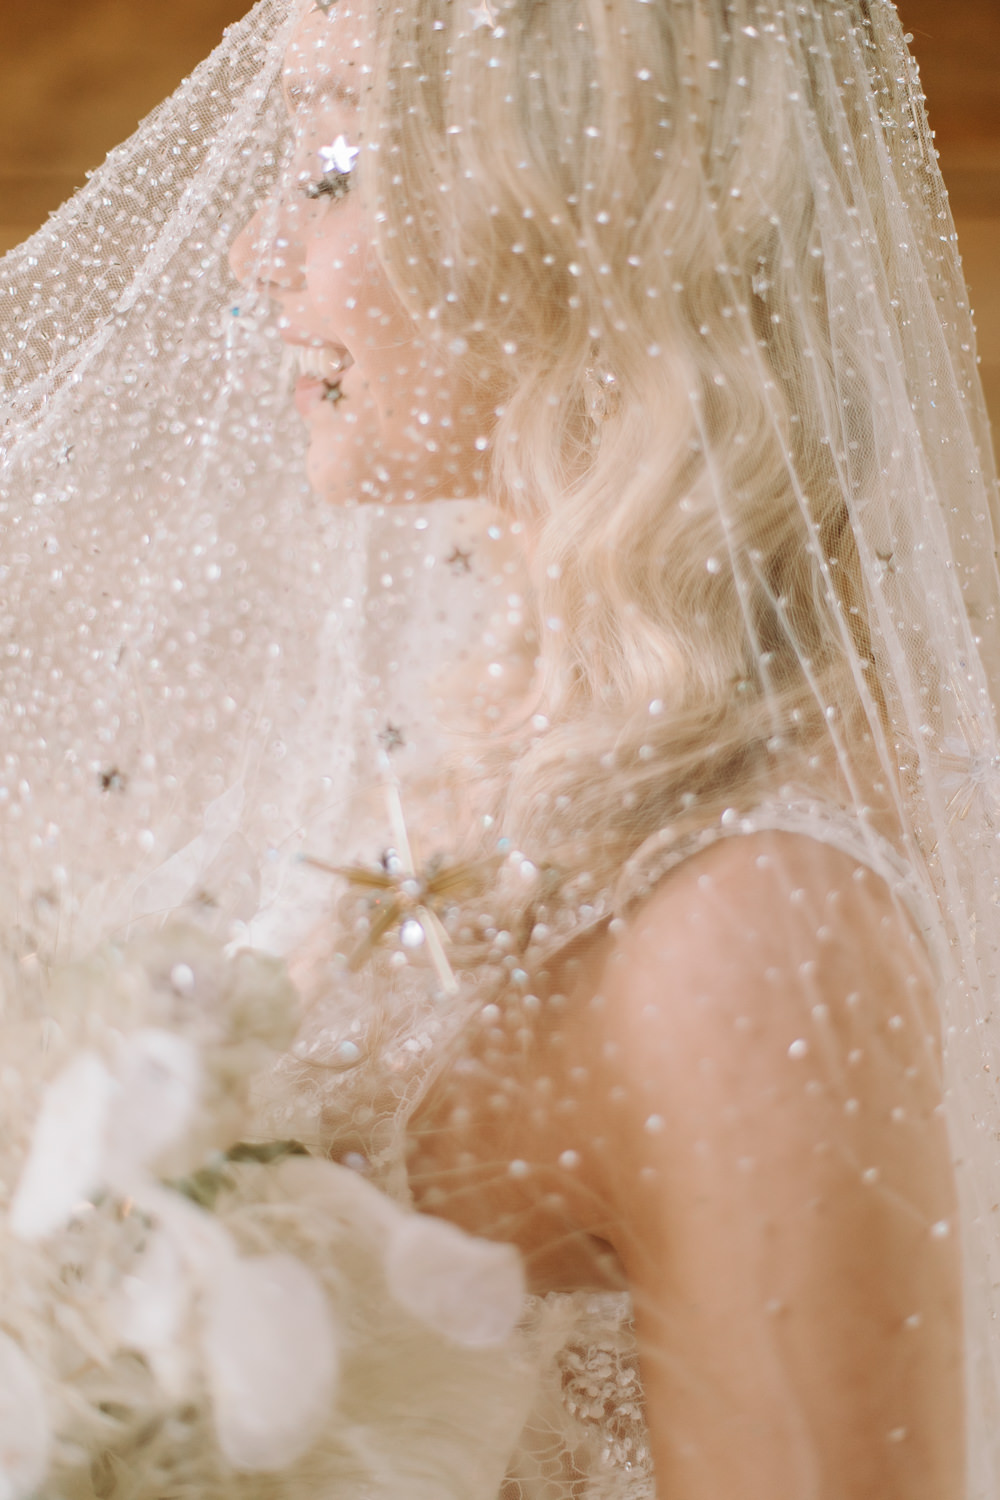 Bride Bridal Starry Veil Embroidered Gold Stars Sequins Celestial Wedding Ideas Christine Thirdwheeling